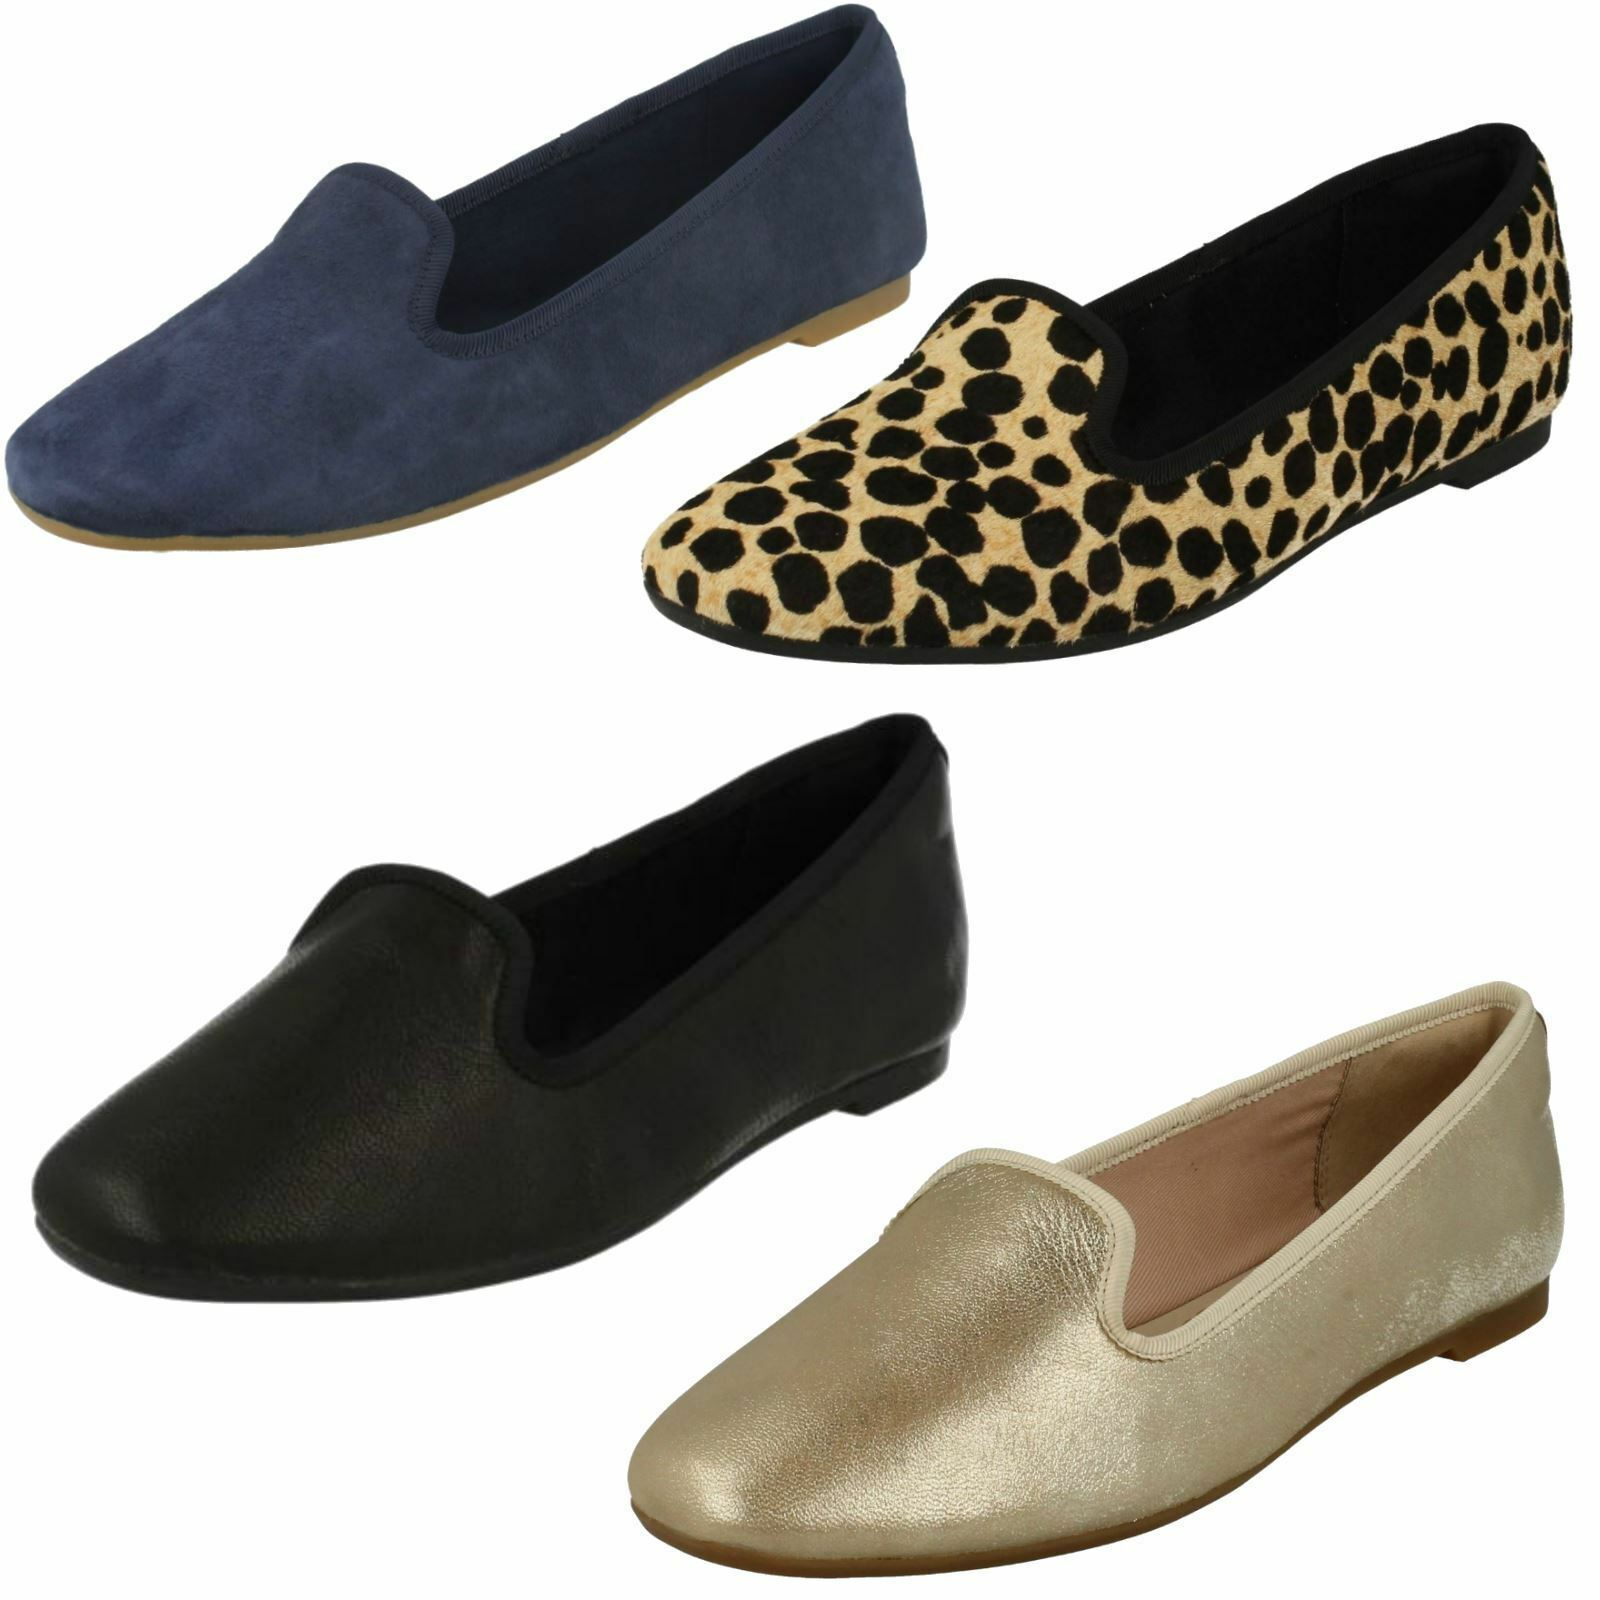 LADIES CLARKS LEATHER PUMPS FLAT SLIP ON CASUAL PUMPS LEATHER LOAFERS SHOES SIZE CHIA MILLY 17ff95